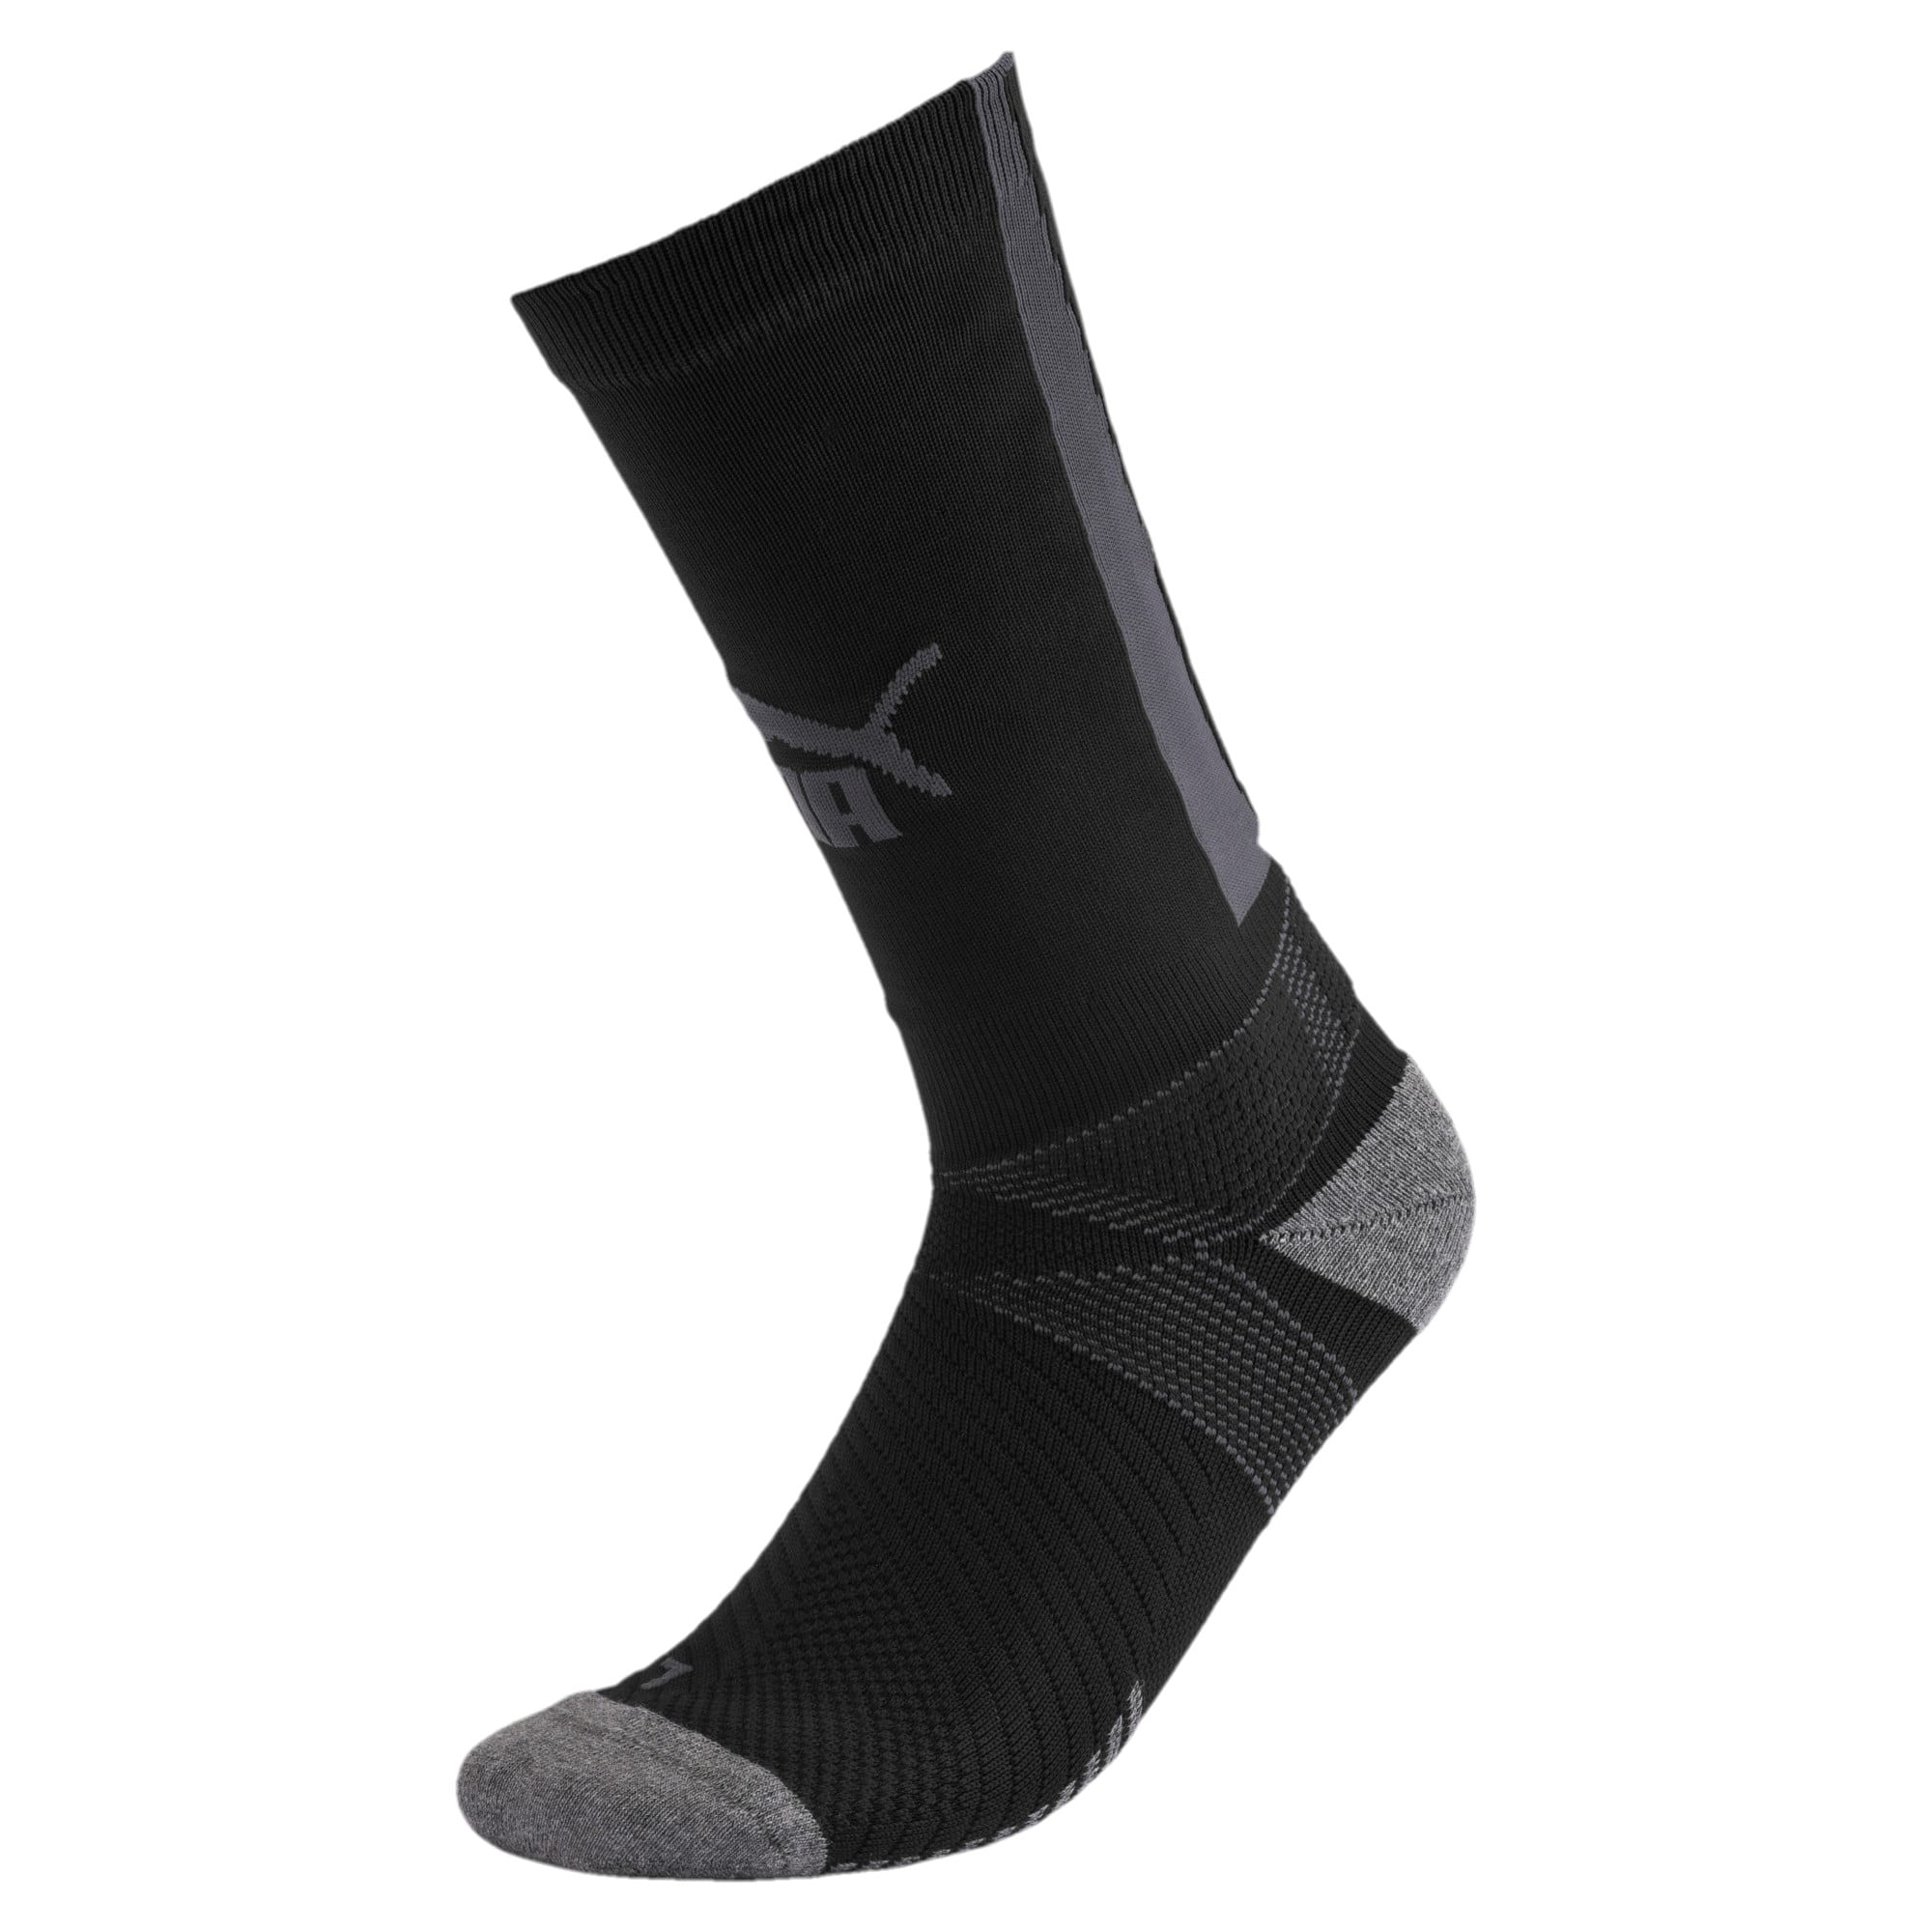 Thumbnail 1 of Team ftblNXT Casuals Men's Socks, Puma Black-puma black, medium